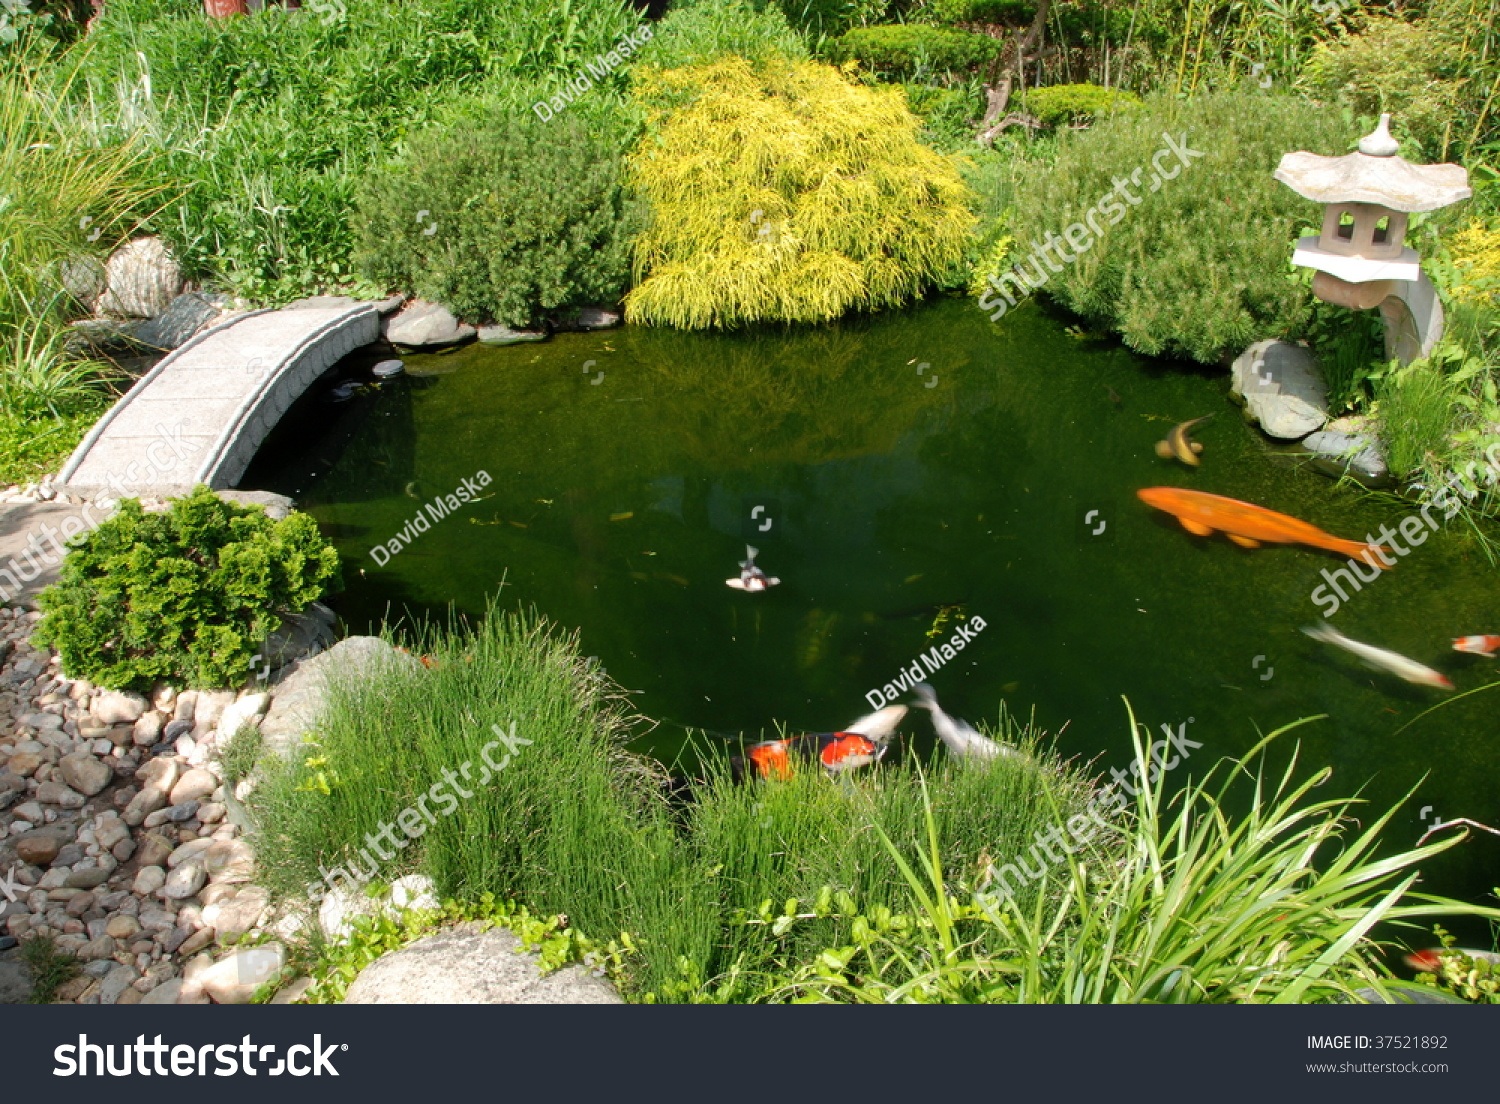 Koi fish in a pond of a beautiful japanese garden stock for Japanese garden san jose koi fish